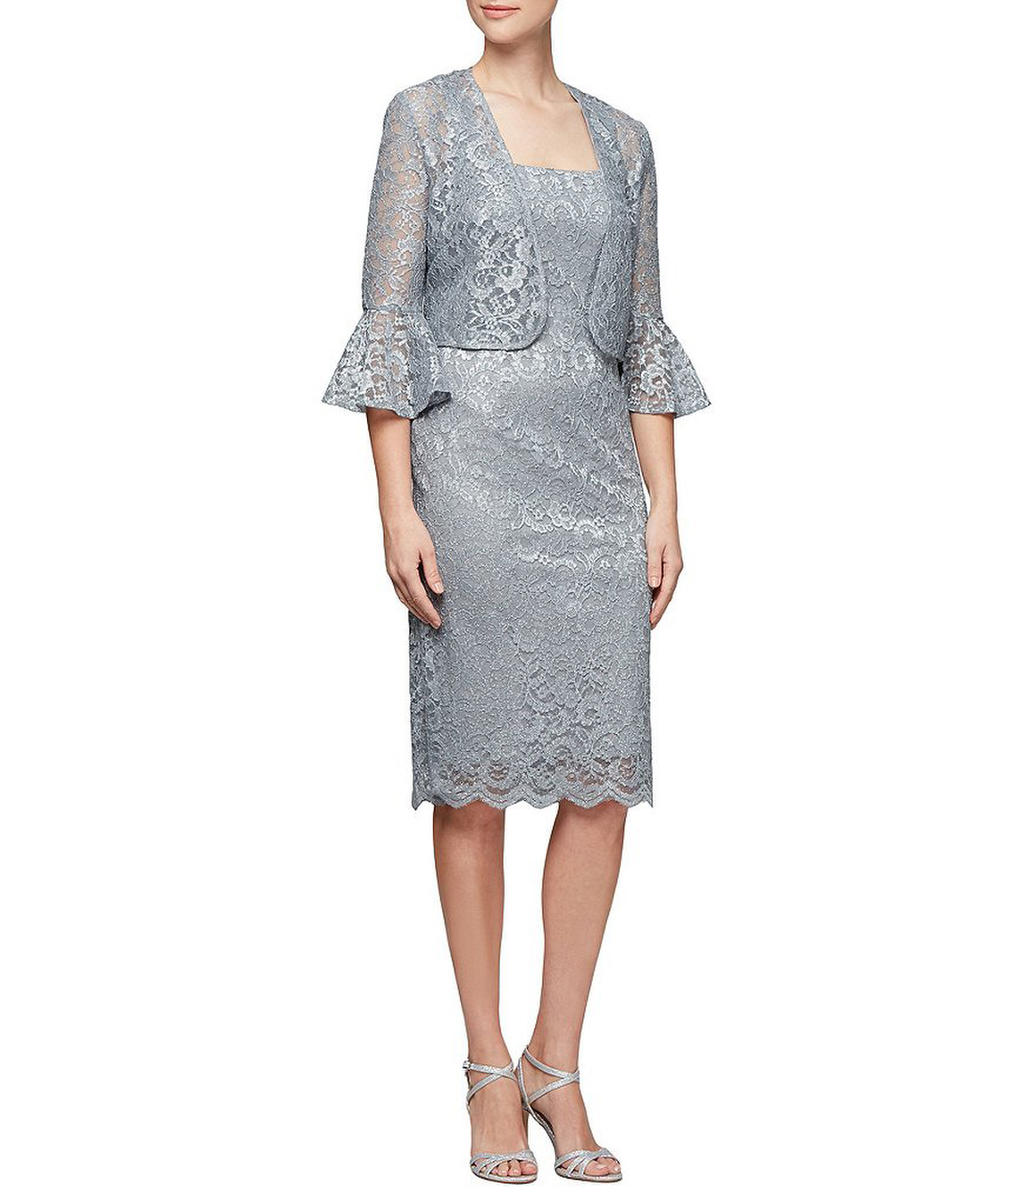 ALEX APPAREL GROUP INC - Metallic Lace Sheat Dress with Bell Sleeve Jacket